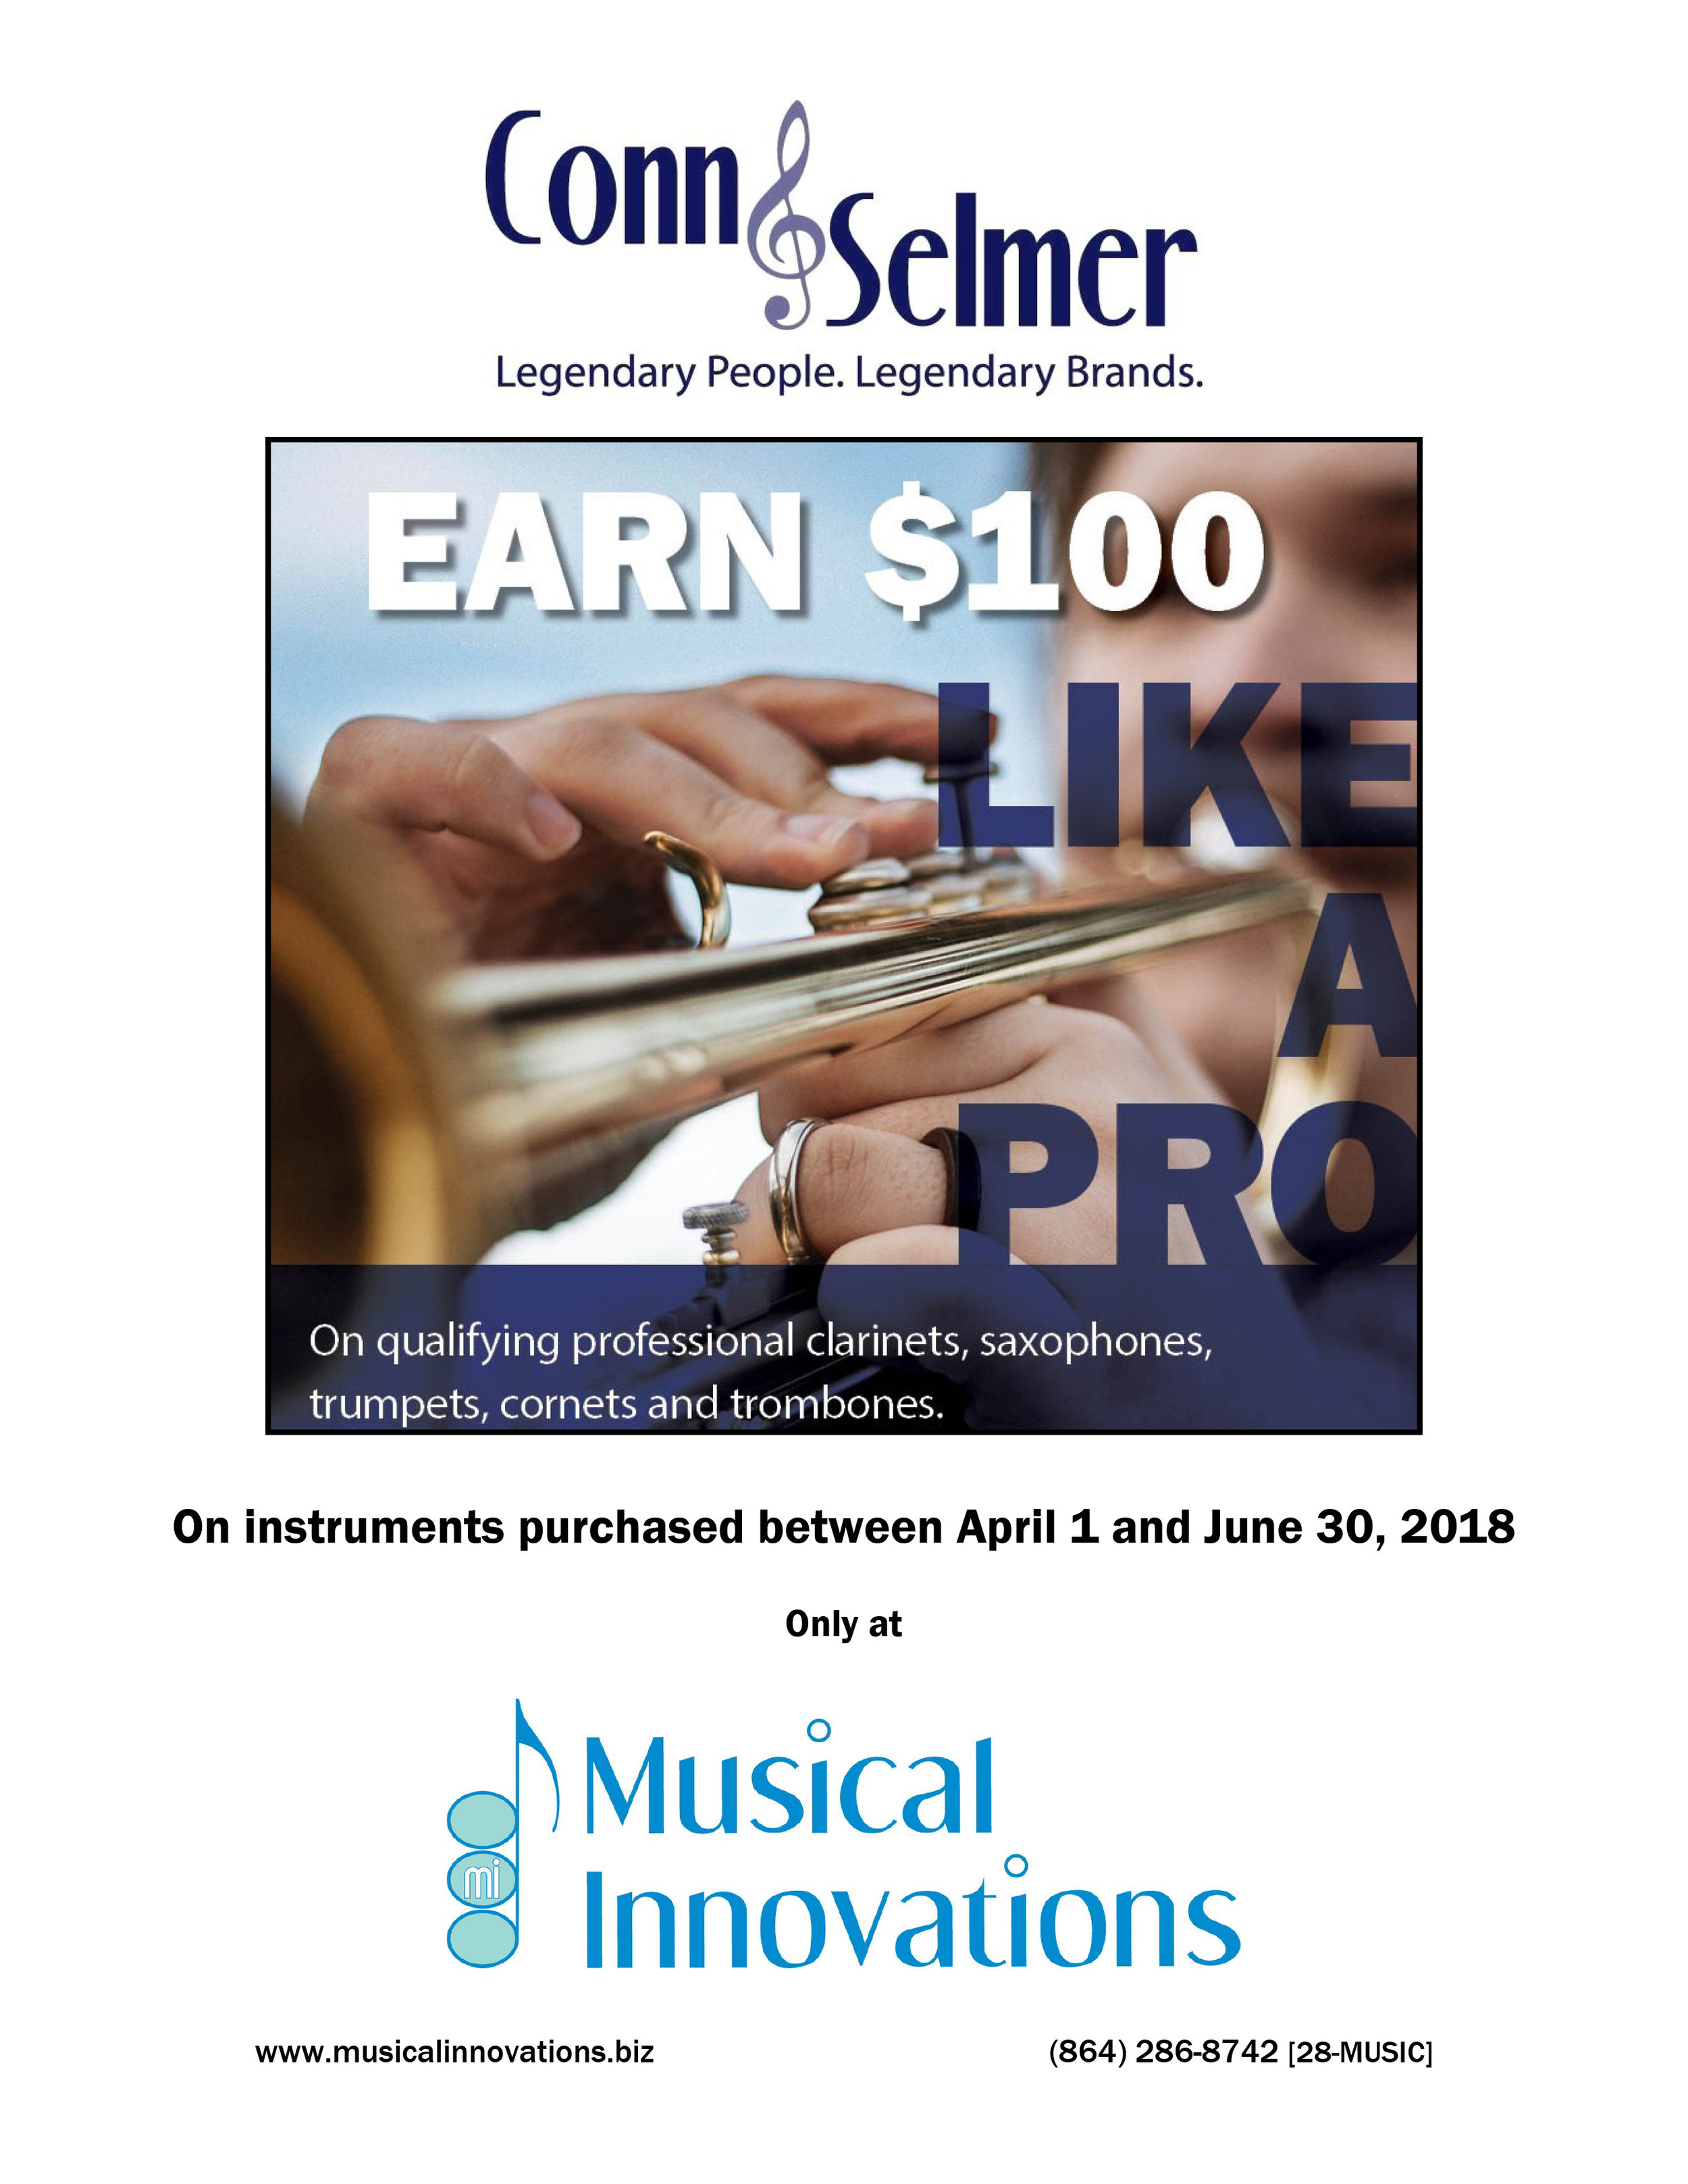 Get $100 back on qualifying professional clarinets, saxophones, trumpets, cornets and trombones.